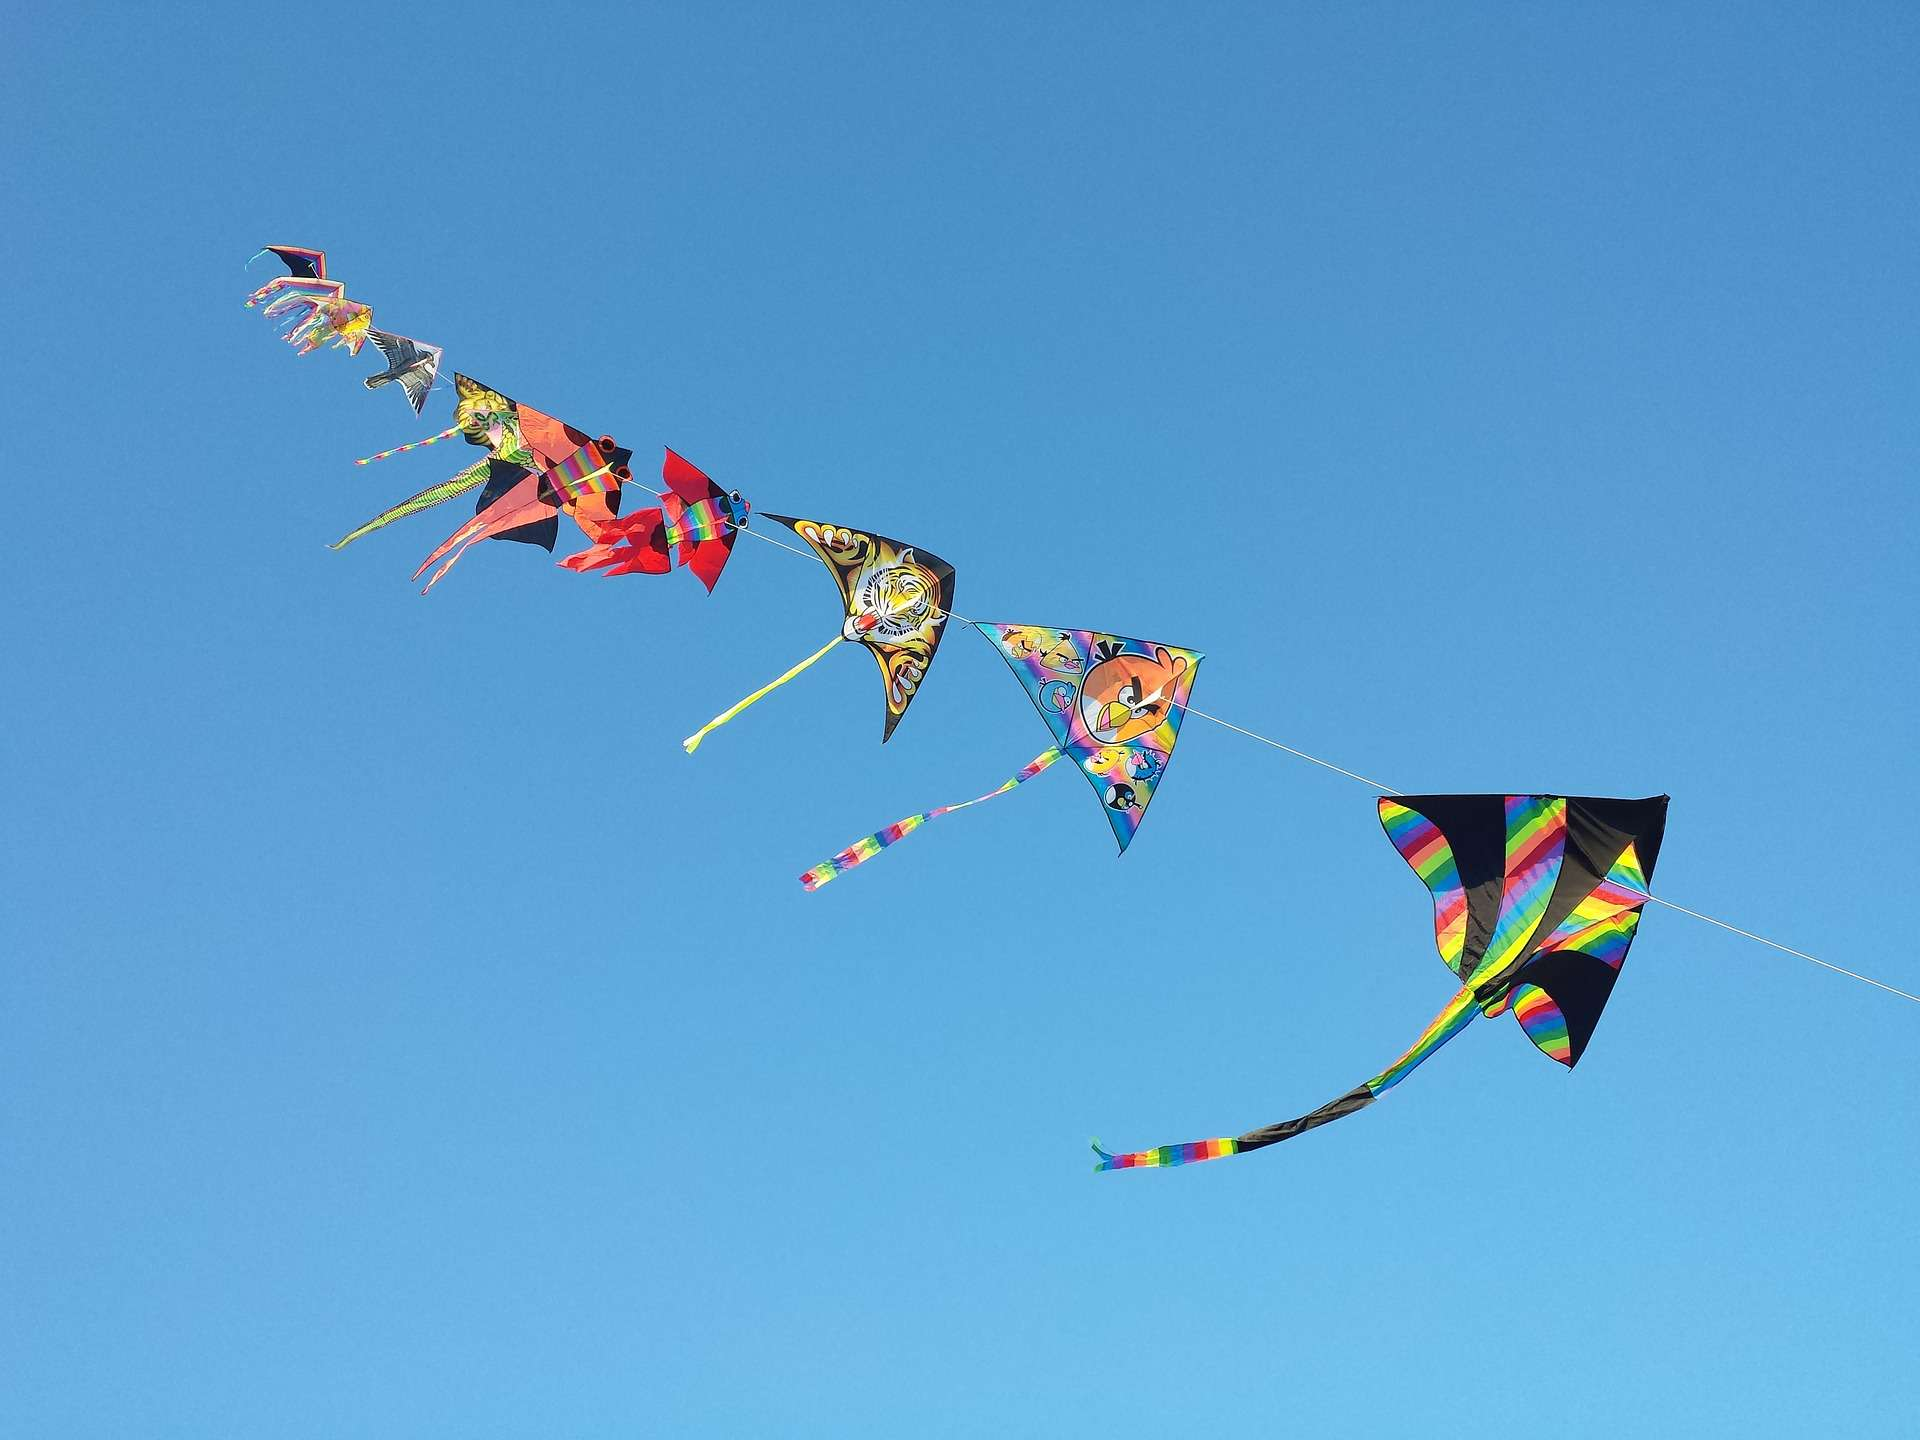 Colorful paper kites against a cloudless blue sky.